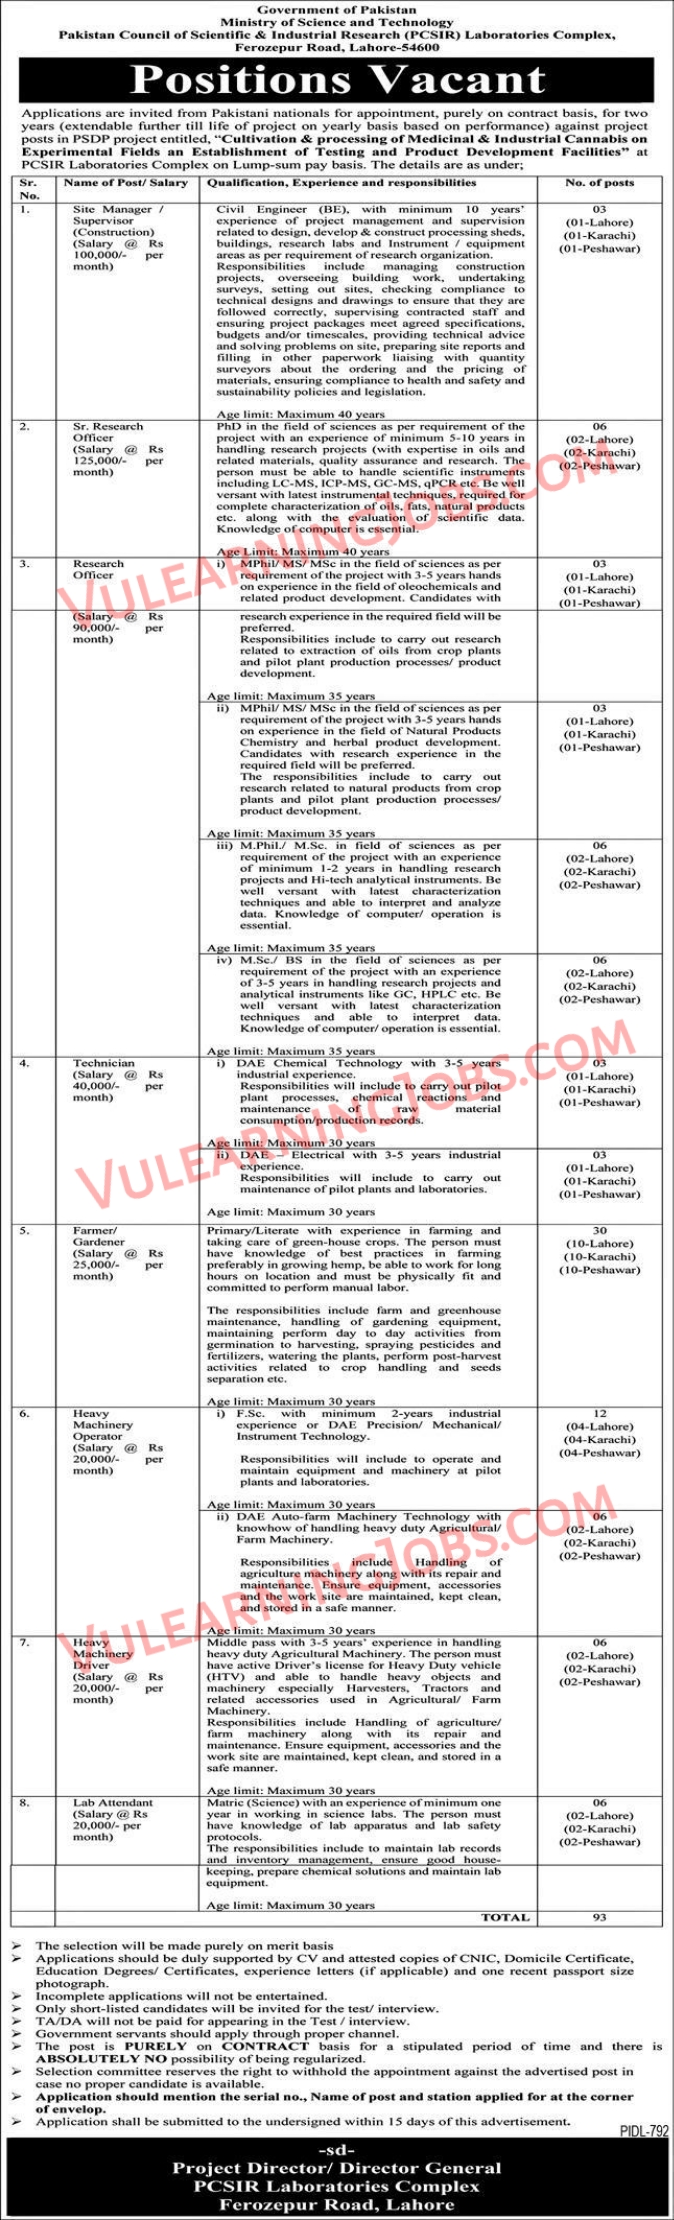 Ministry Of Science & Technology Jobs September 2021 For Supervisor, Research Officer, Technician & Other Latest